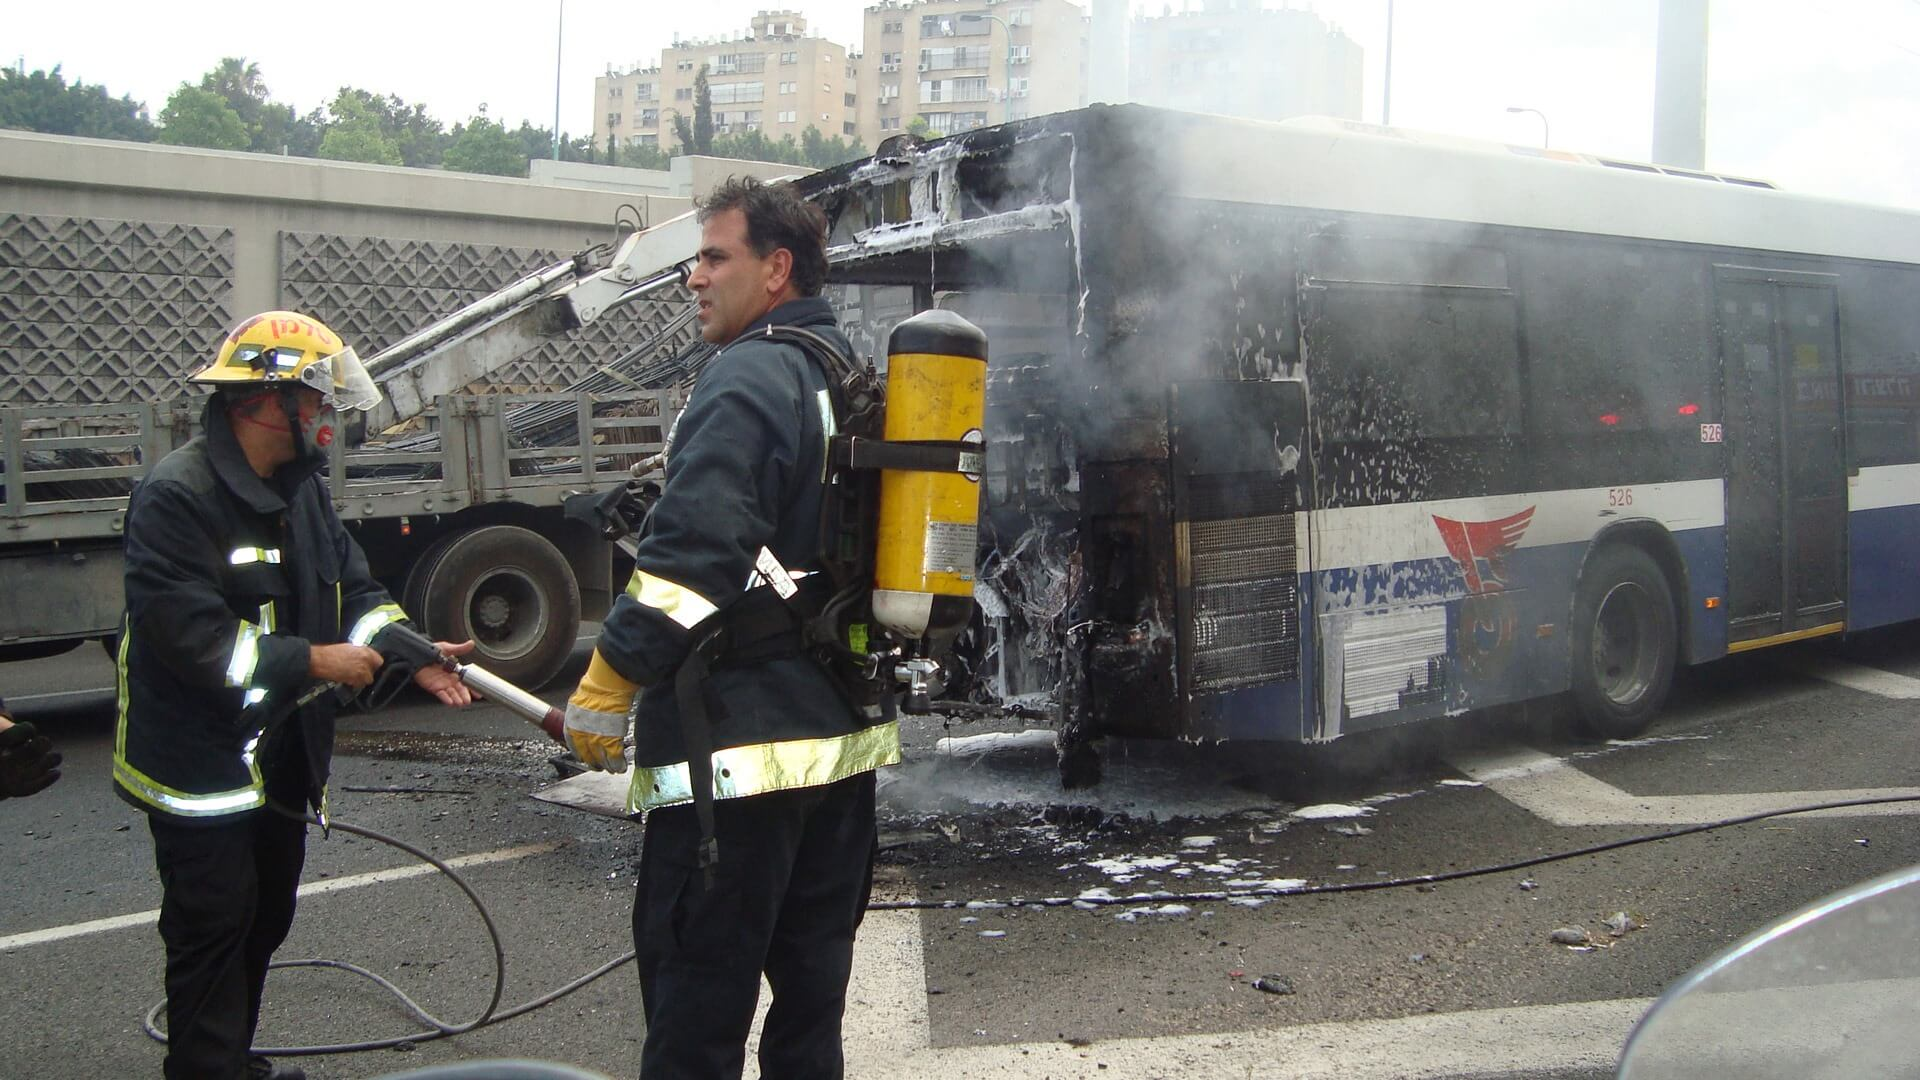 highway bus accident fire